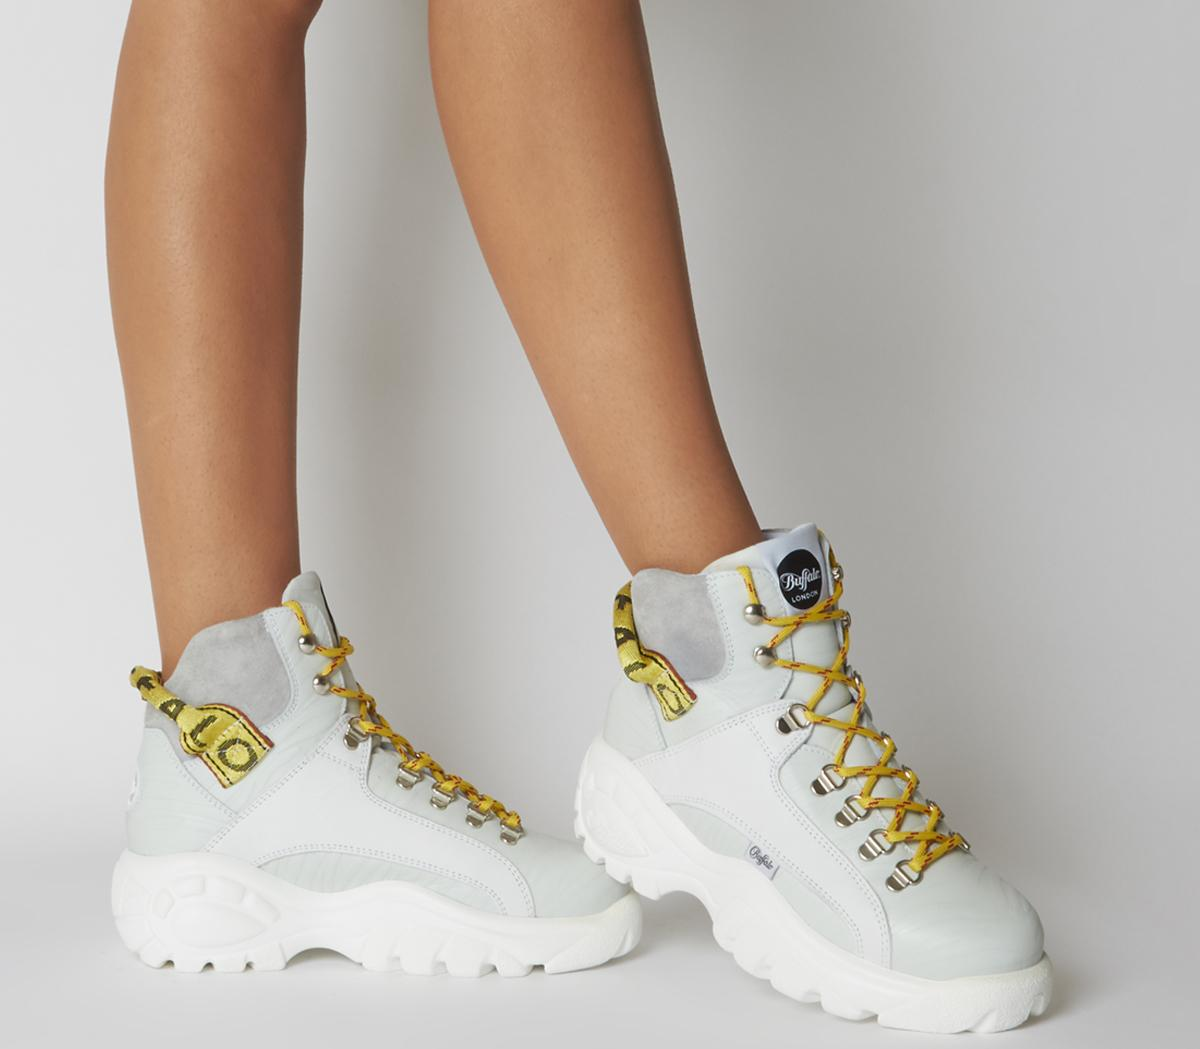 Giselle Sneaker Boots